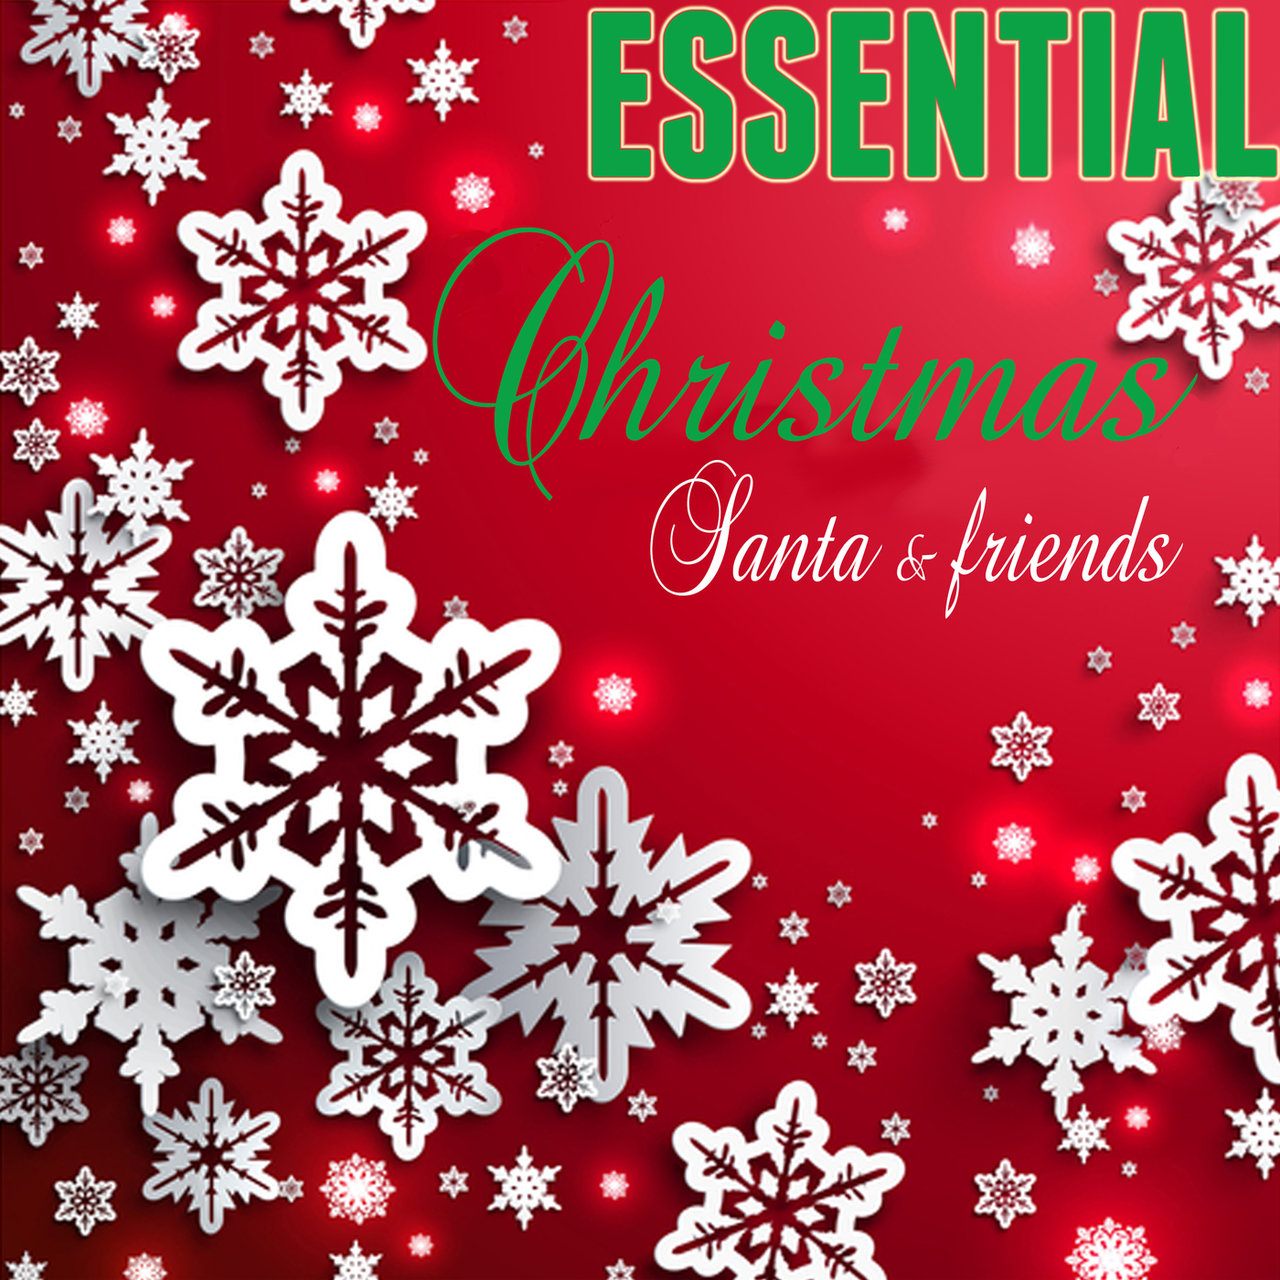 Essential Christmas: Santa & Friends